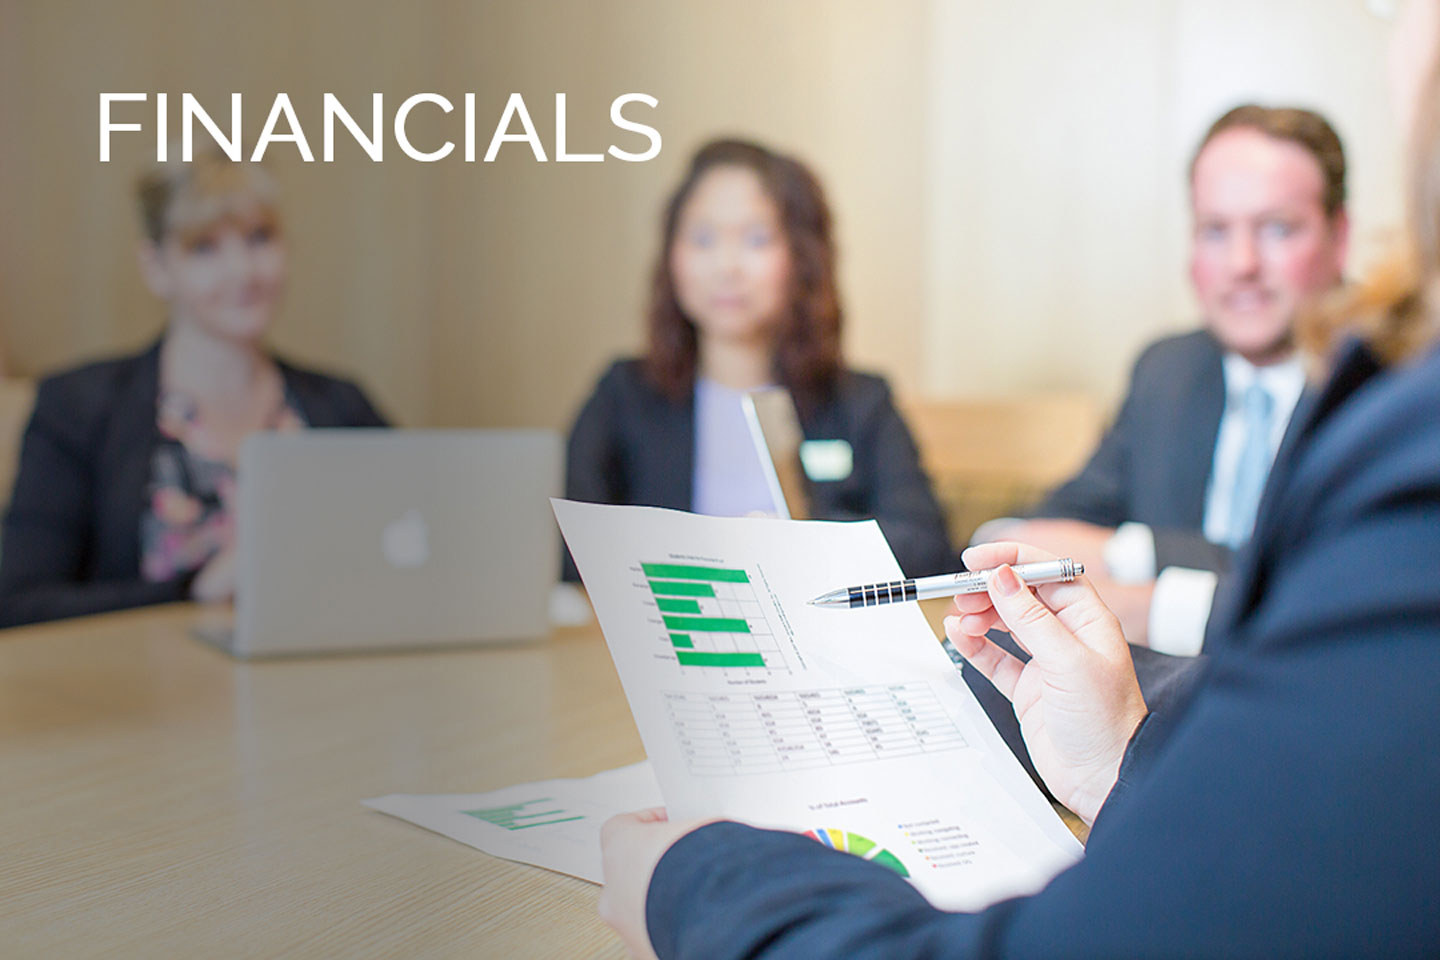 financials